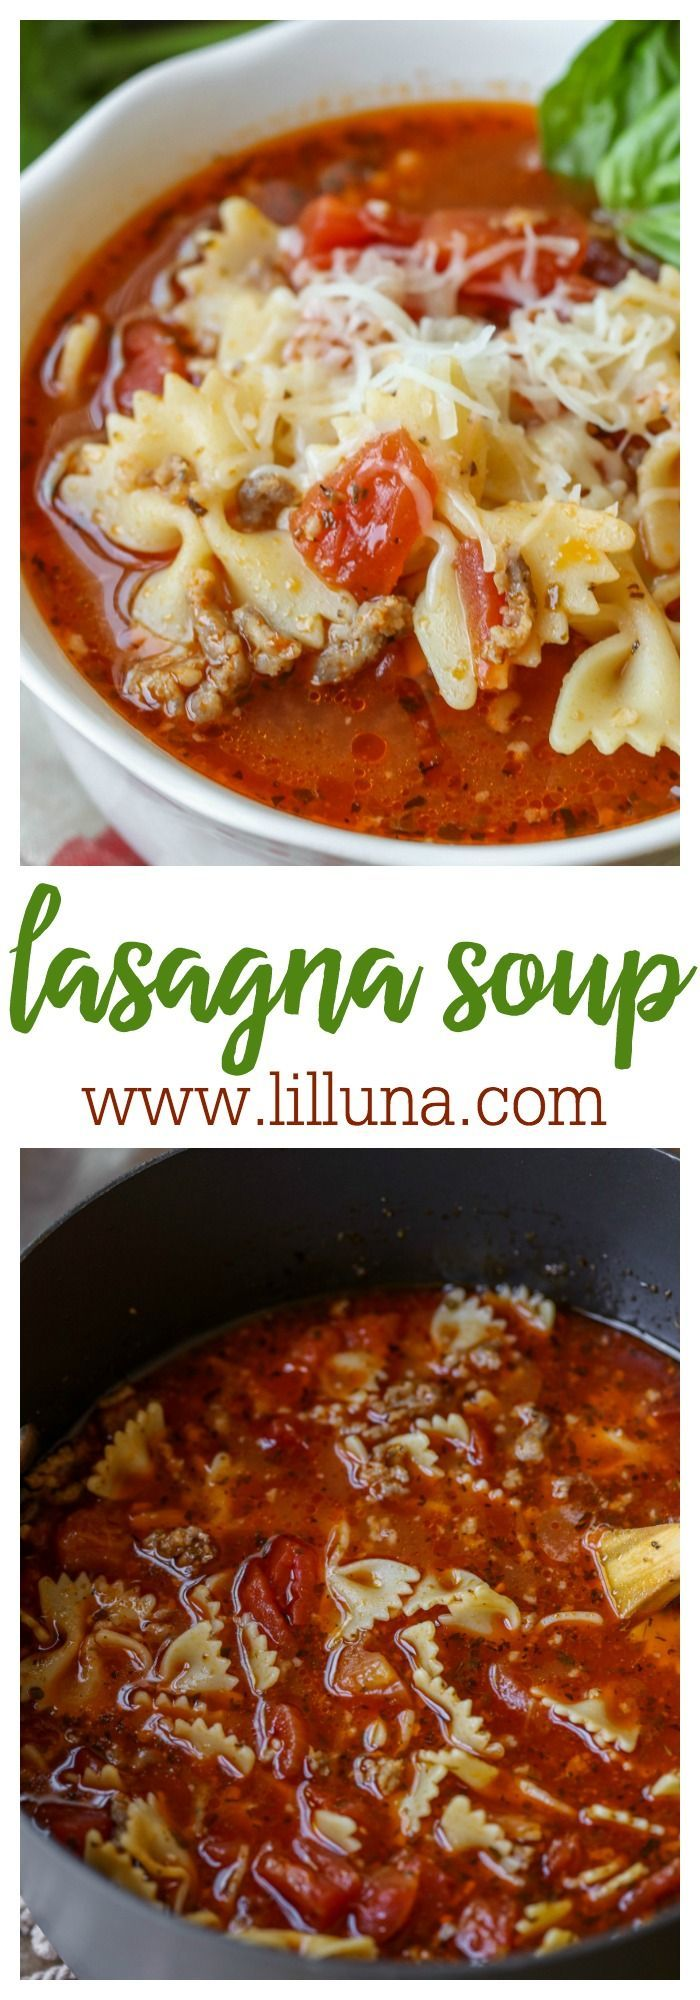 Lasagna Soup - filled with pasta, Italian sausage, diced tomatoes, and lots of yummy seasonings! Served with a ricotta and parmesan cheese mixture at the bottom of your bowl, this soup is just like lasagna!!